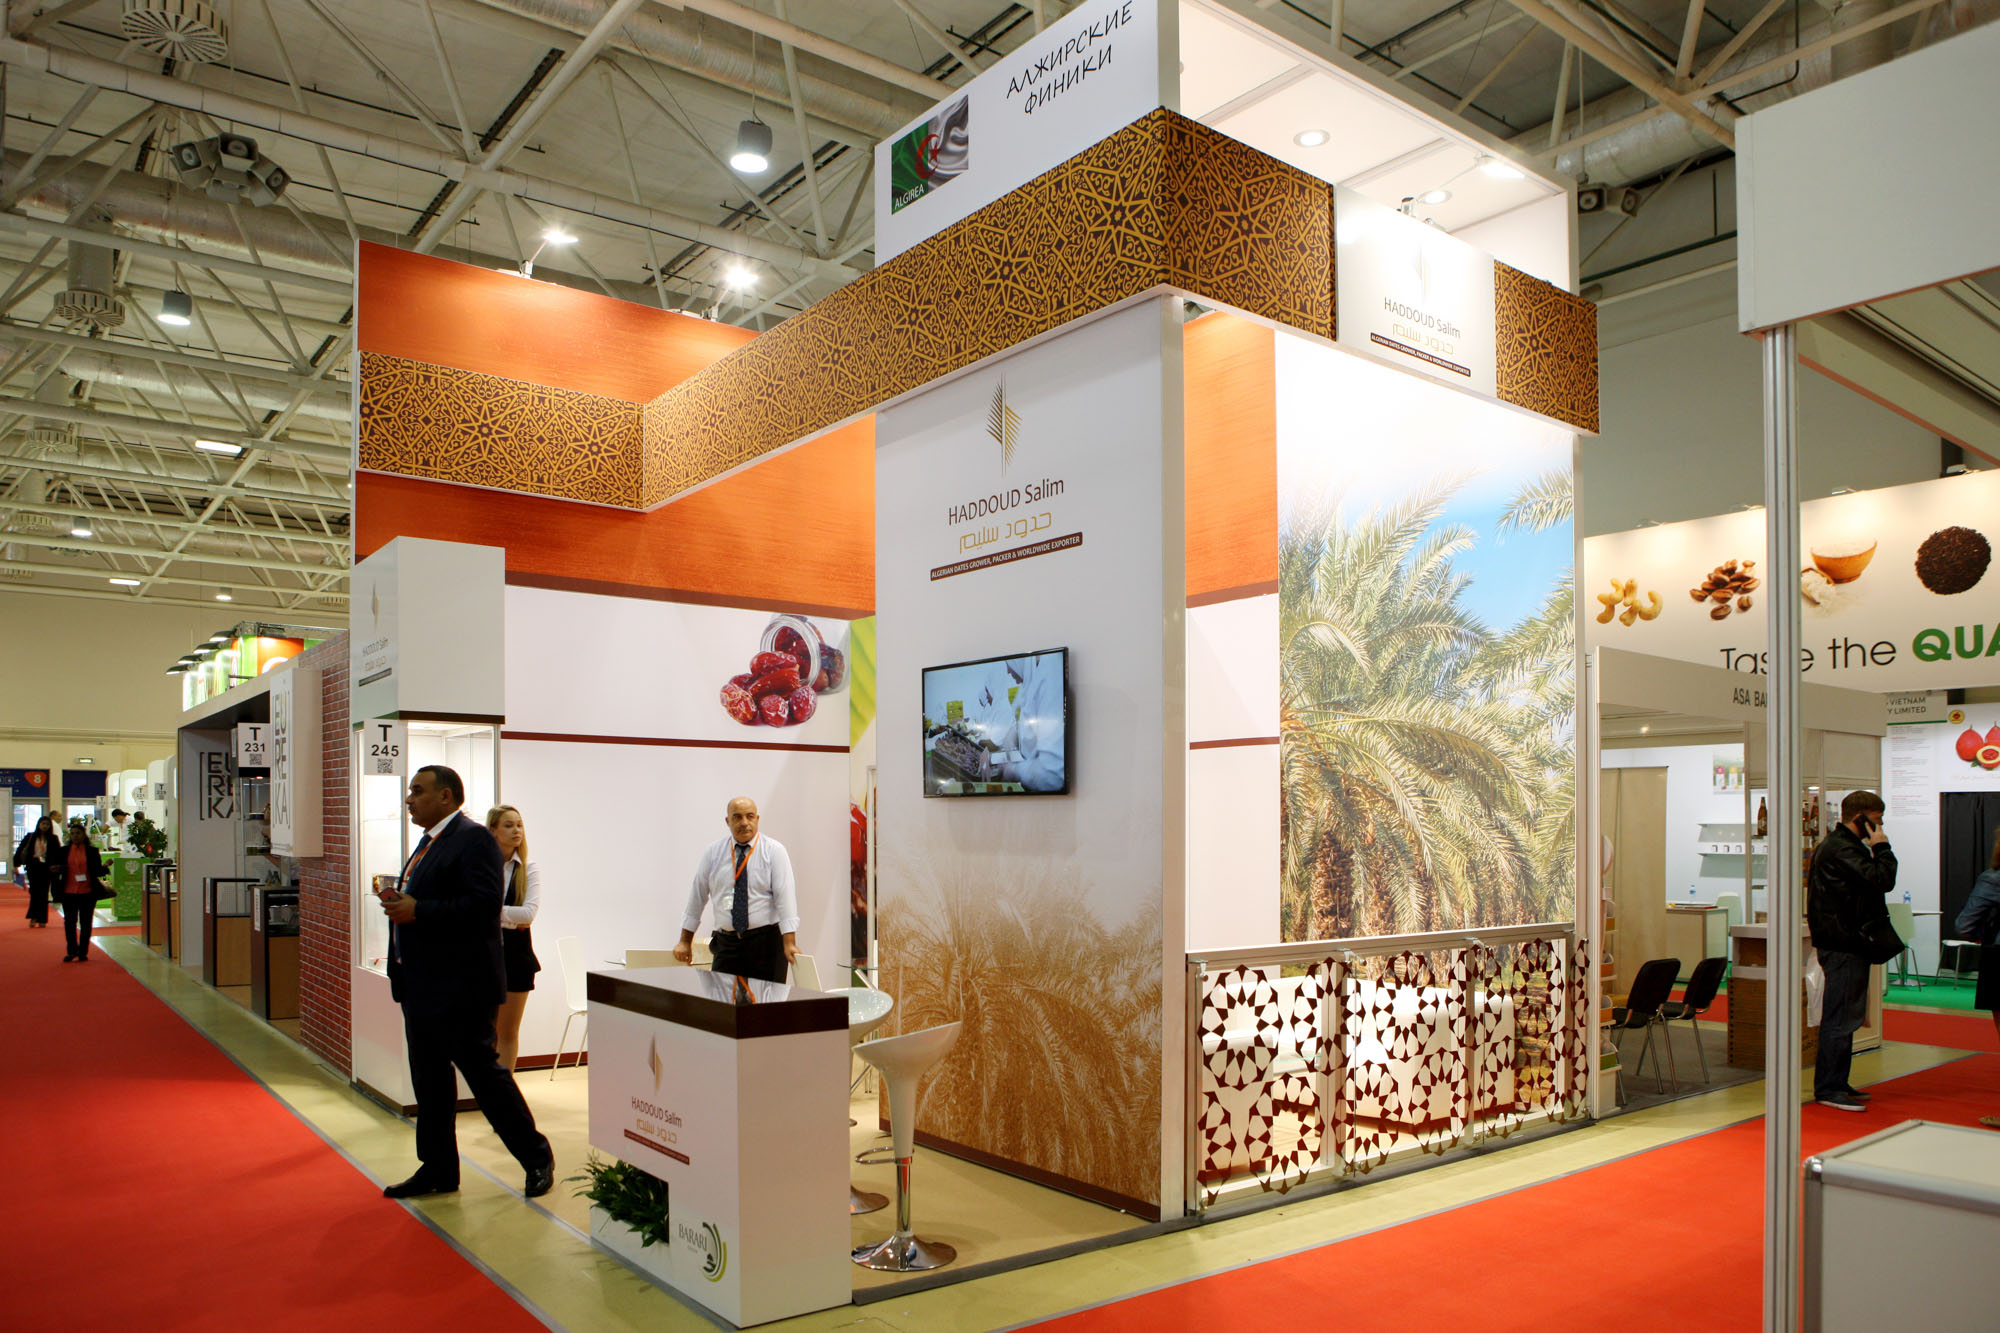 HADDOUD SALIM на WORLD FOOD 2015